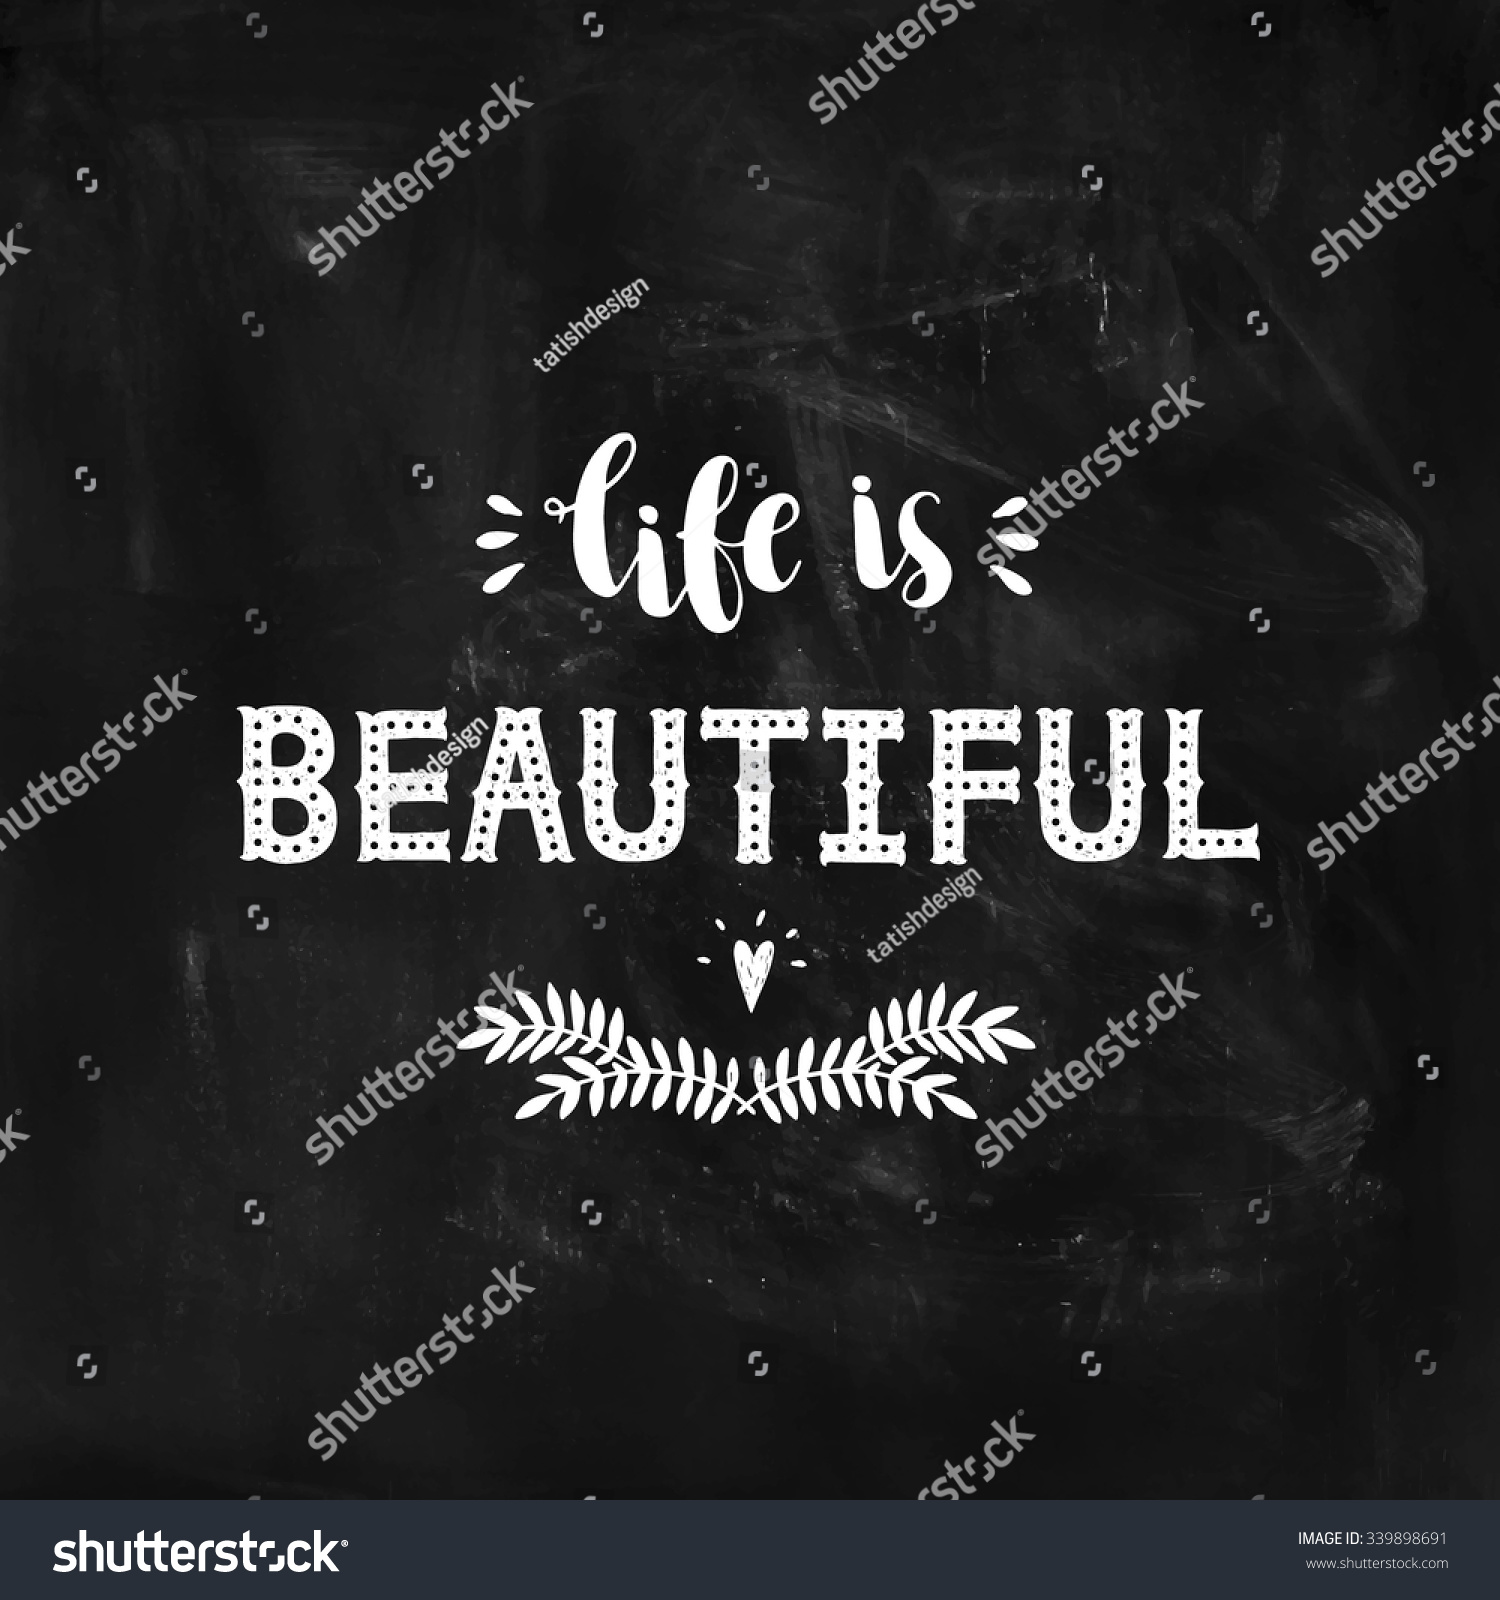 Motivational Inspirational Quotes: Life Is Beautiful, Inspirational Poster With Hand Drawn